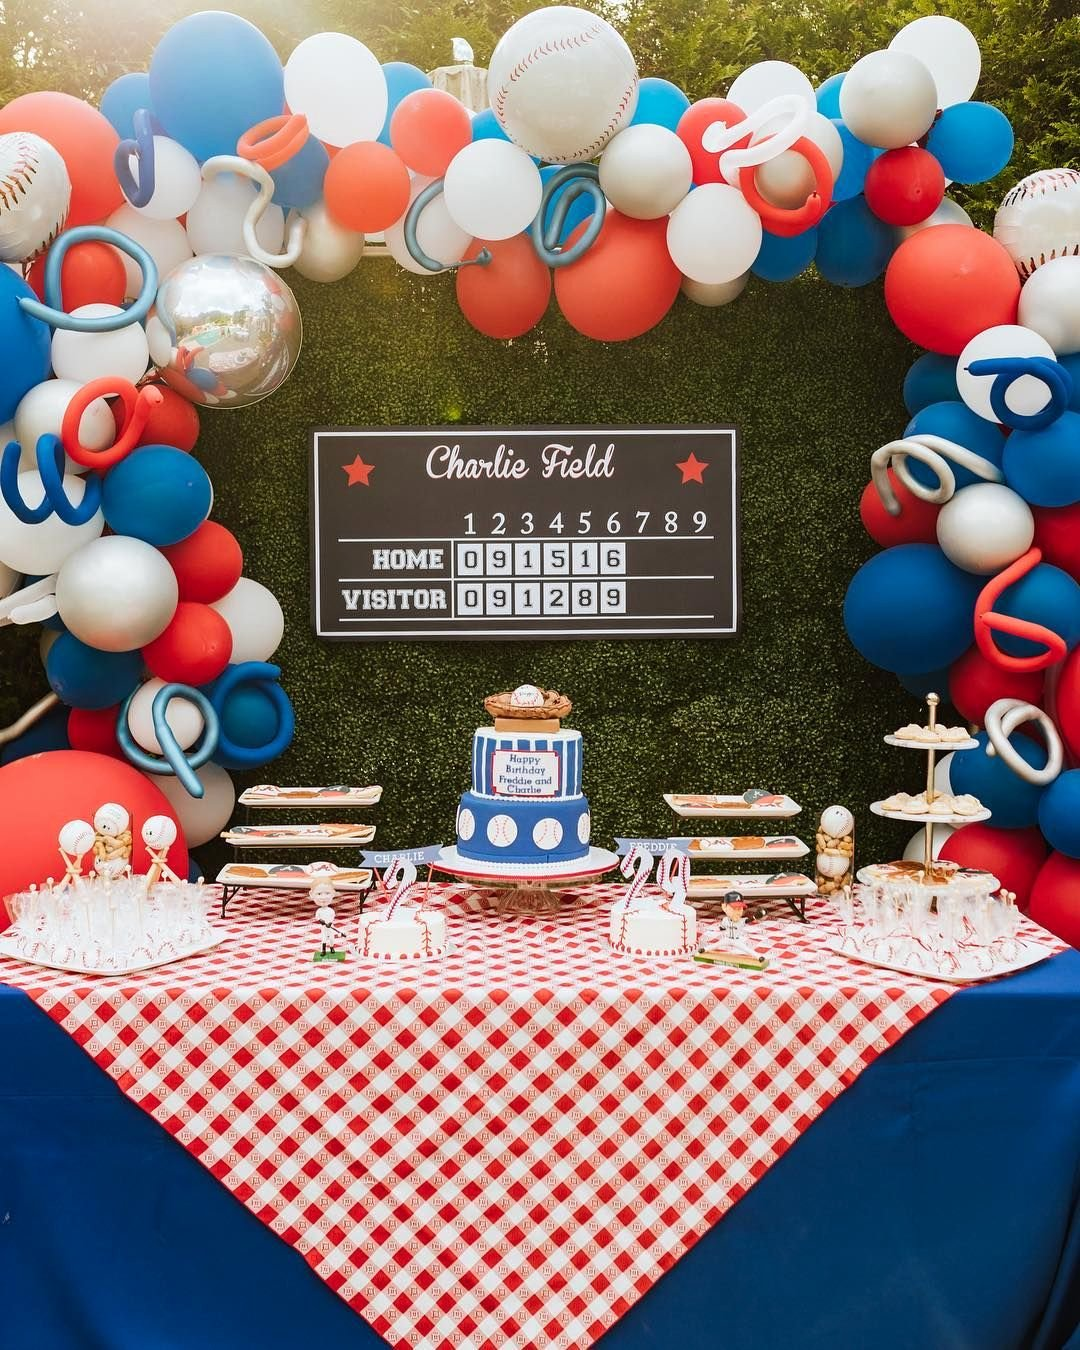 Baseball Birthday Decoration Ideas Lovely Baseball Birthday Party Credit Ace Creative events